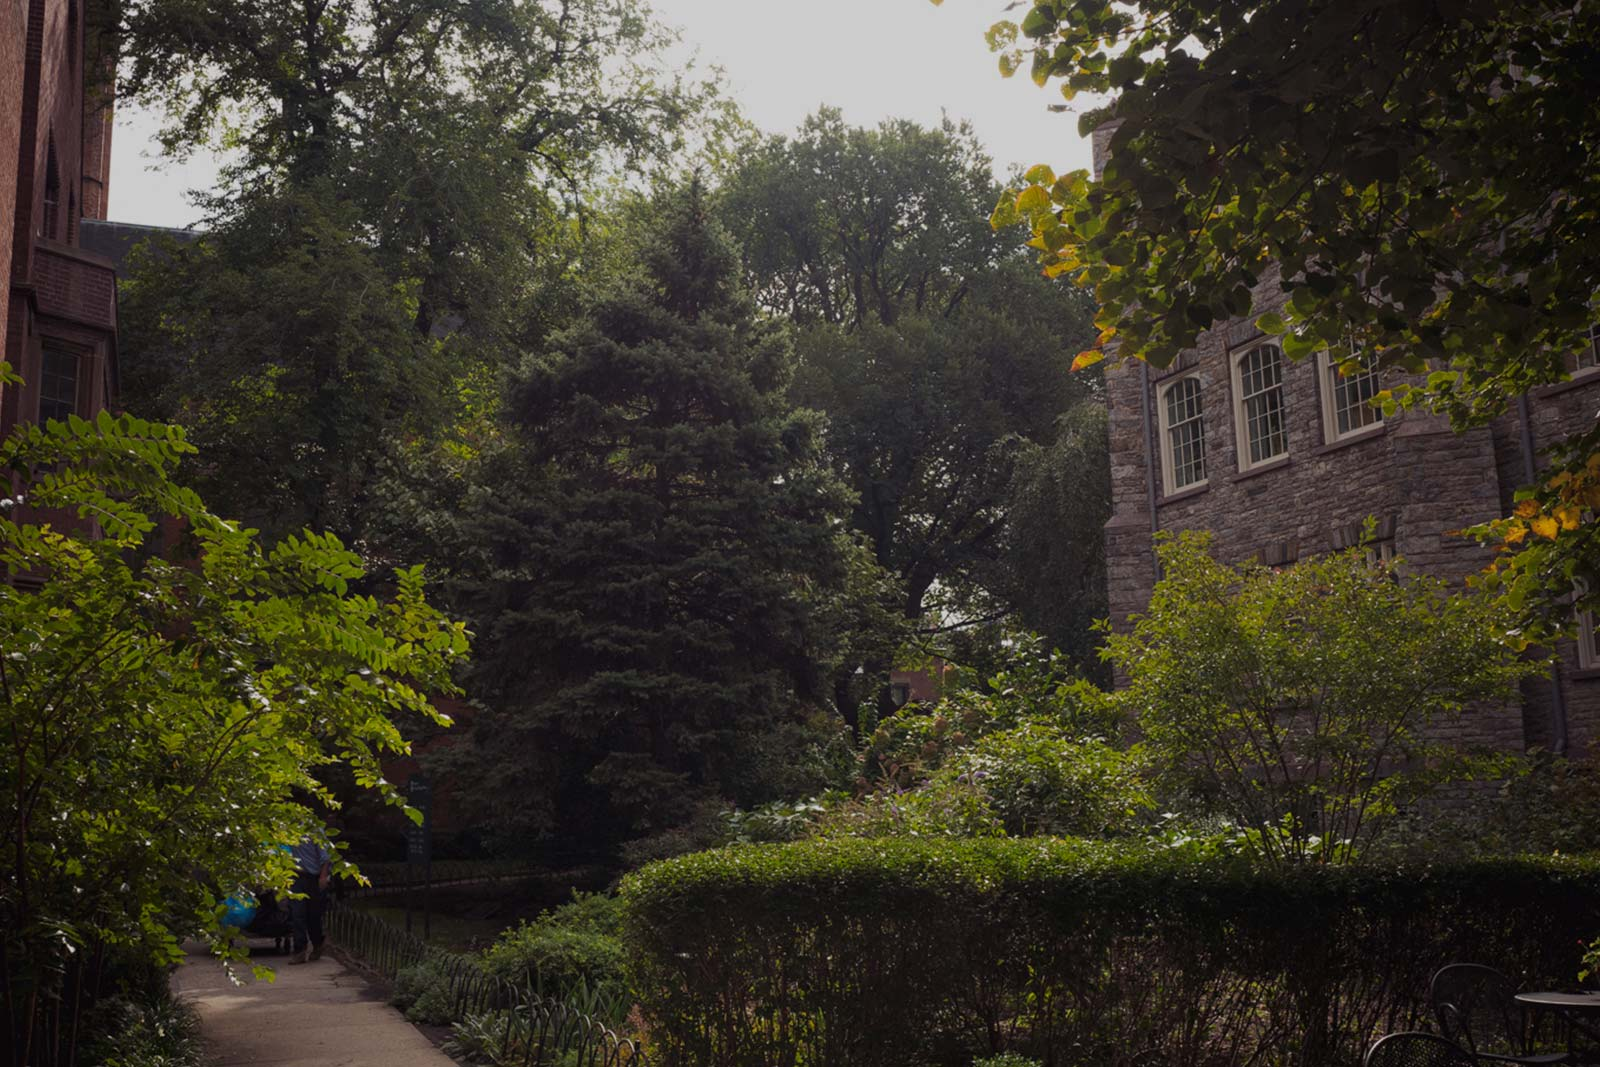 A Beautiful Oasis - Located on the west side of Manhattan in New York City, the General Theological Seminary is frequently noted for the beauty of the gardens on its campus, called the Close. The seminary's Close is surrounded by a row of neo-Gothic buildings and tree-shaded lawns uncharacteristic of its urban setting. Here, students and faculty live together in community — a highlight of the formational experience that General Seminary offers.